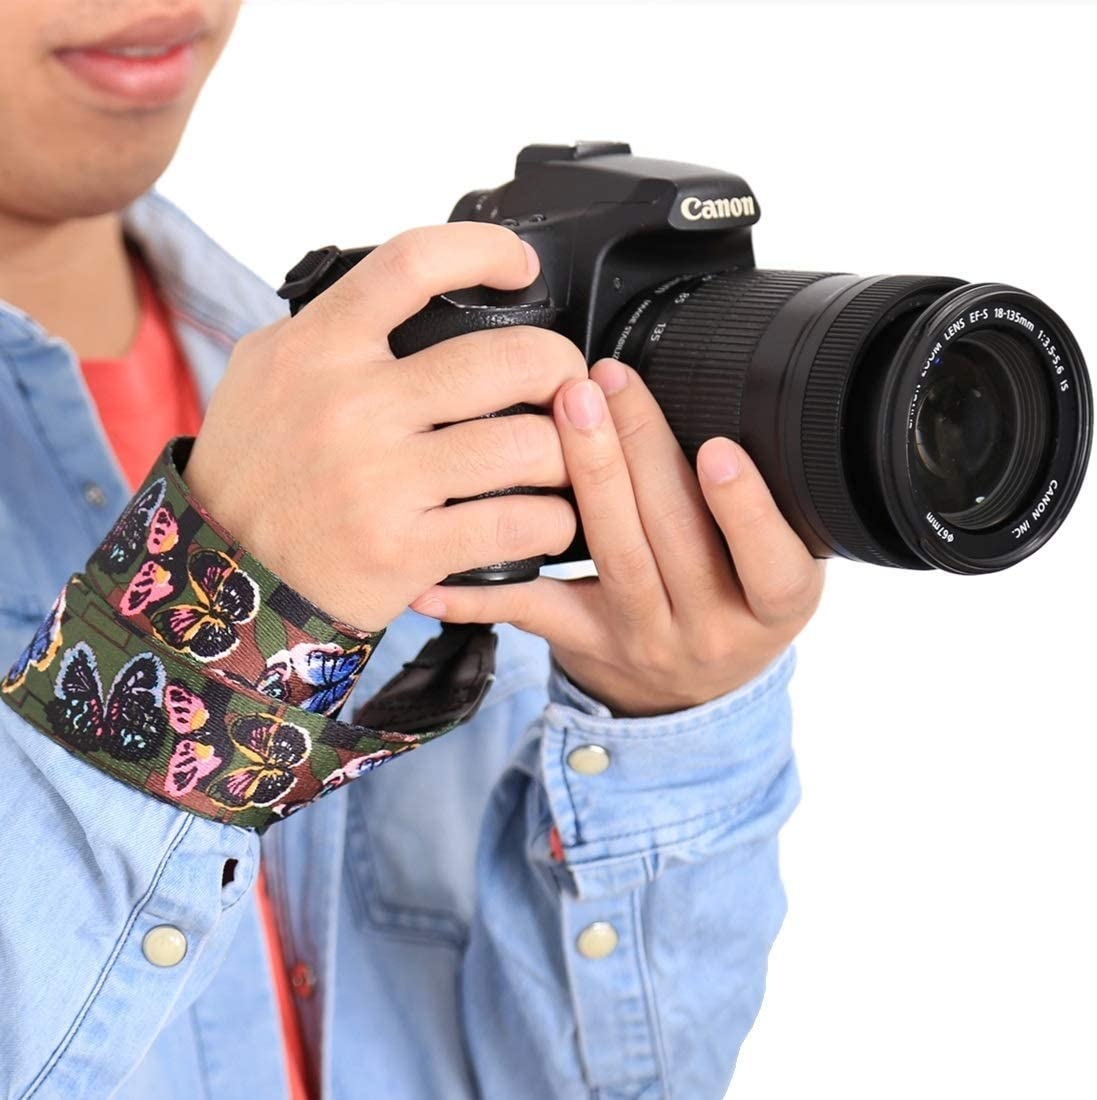 Color : Color2 Ychaoya Camera Belt Wuzpx Retro Pagan Style Particoloured Series Butterflies Shoulder Neck Strap Camera Strap for SLR//DSLR Cameras